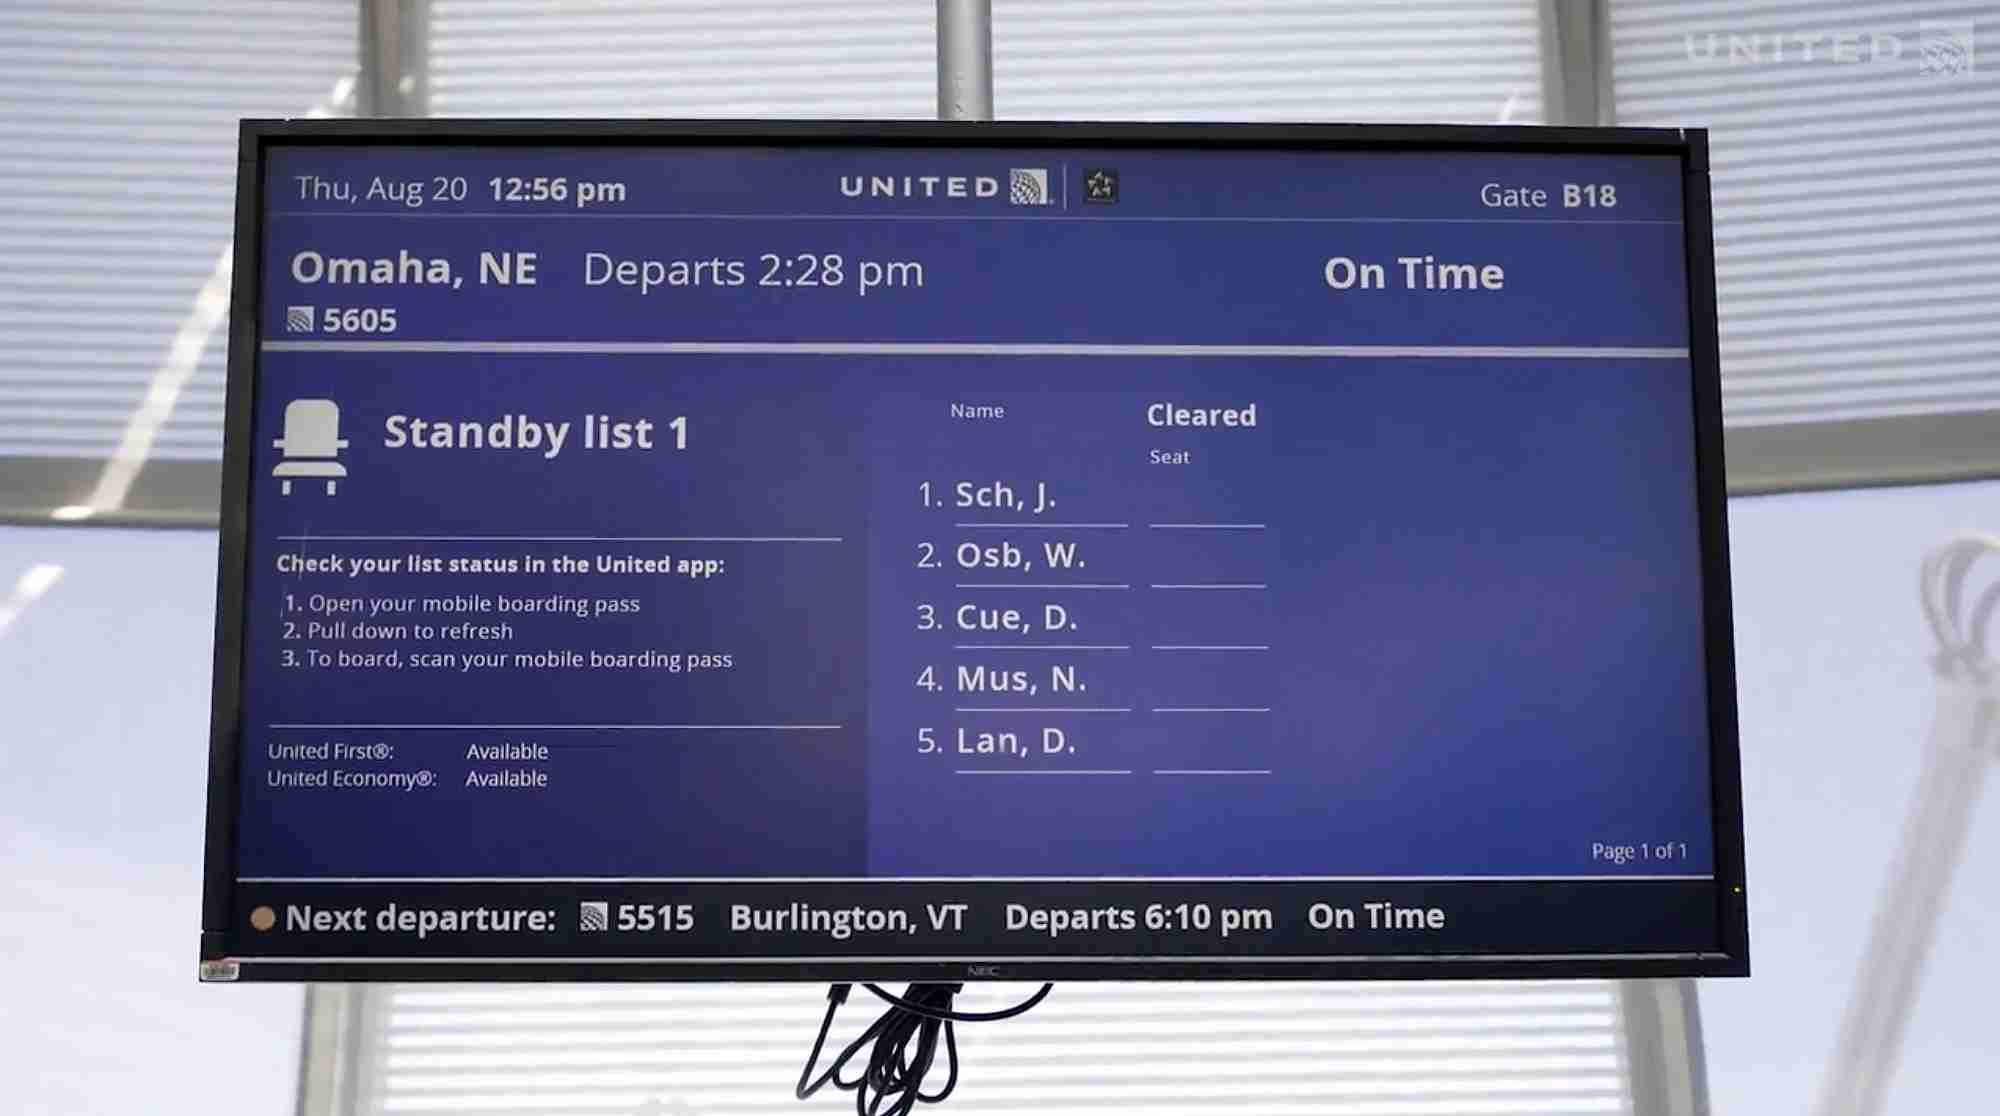 Screenshot courtesy of United Airlines.